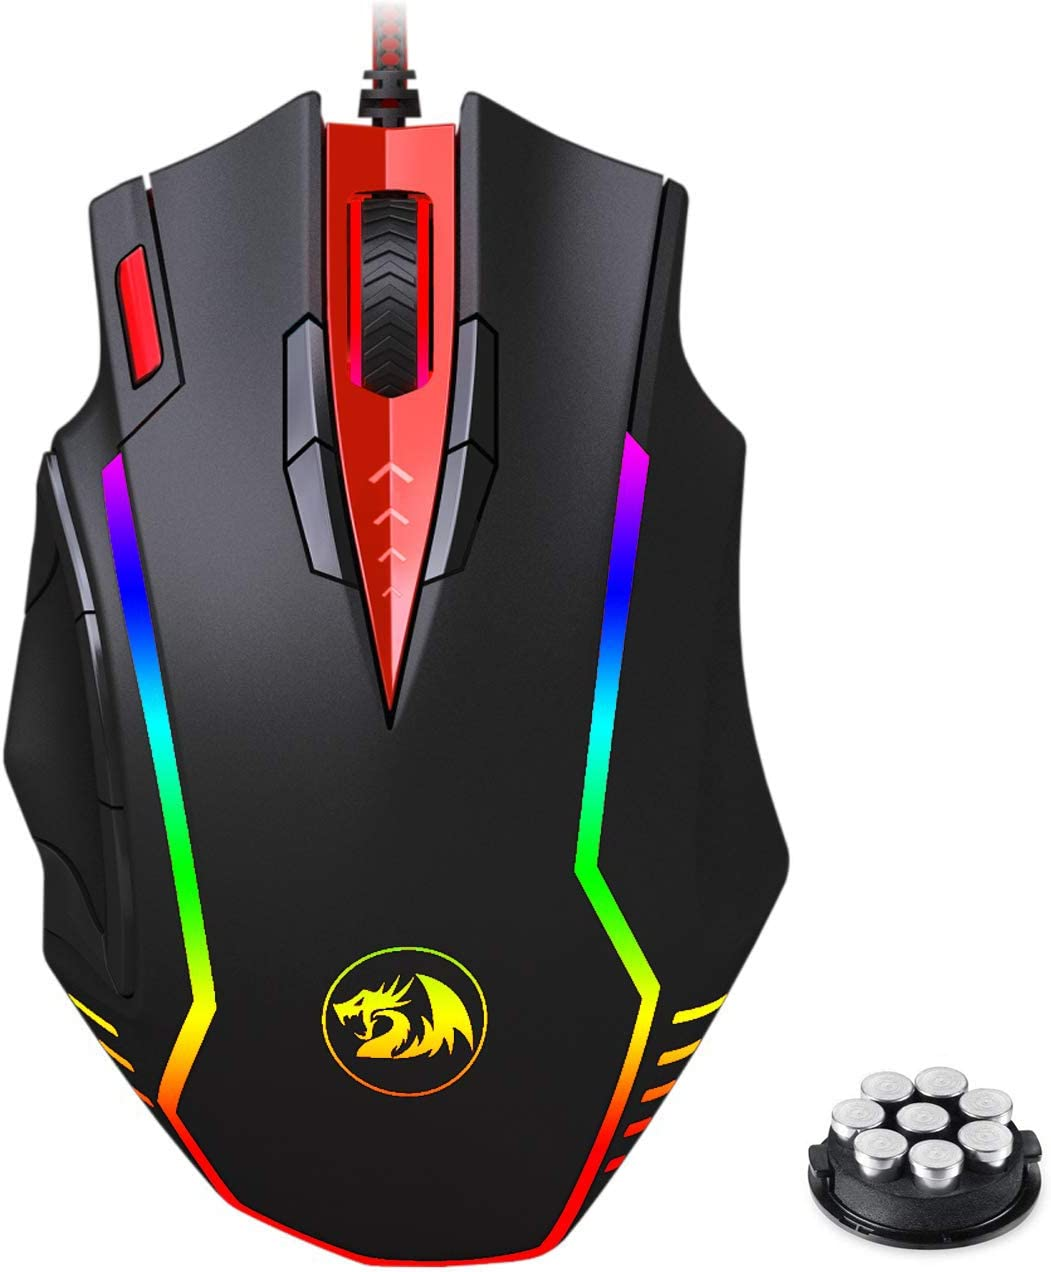 High Precision Sensor 12400 DPI Weight Tuning Set Redragon M902 PC Gaming Mouse with Side Buttons RGB Backlit USB Wired Samsara Mouse for Windows PC FPS Games Black